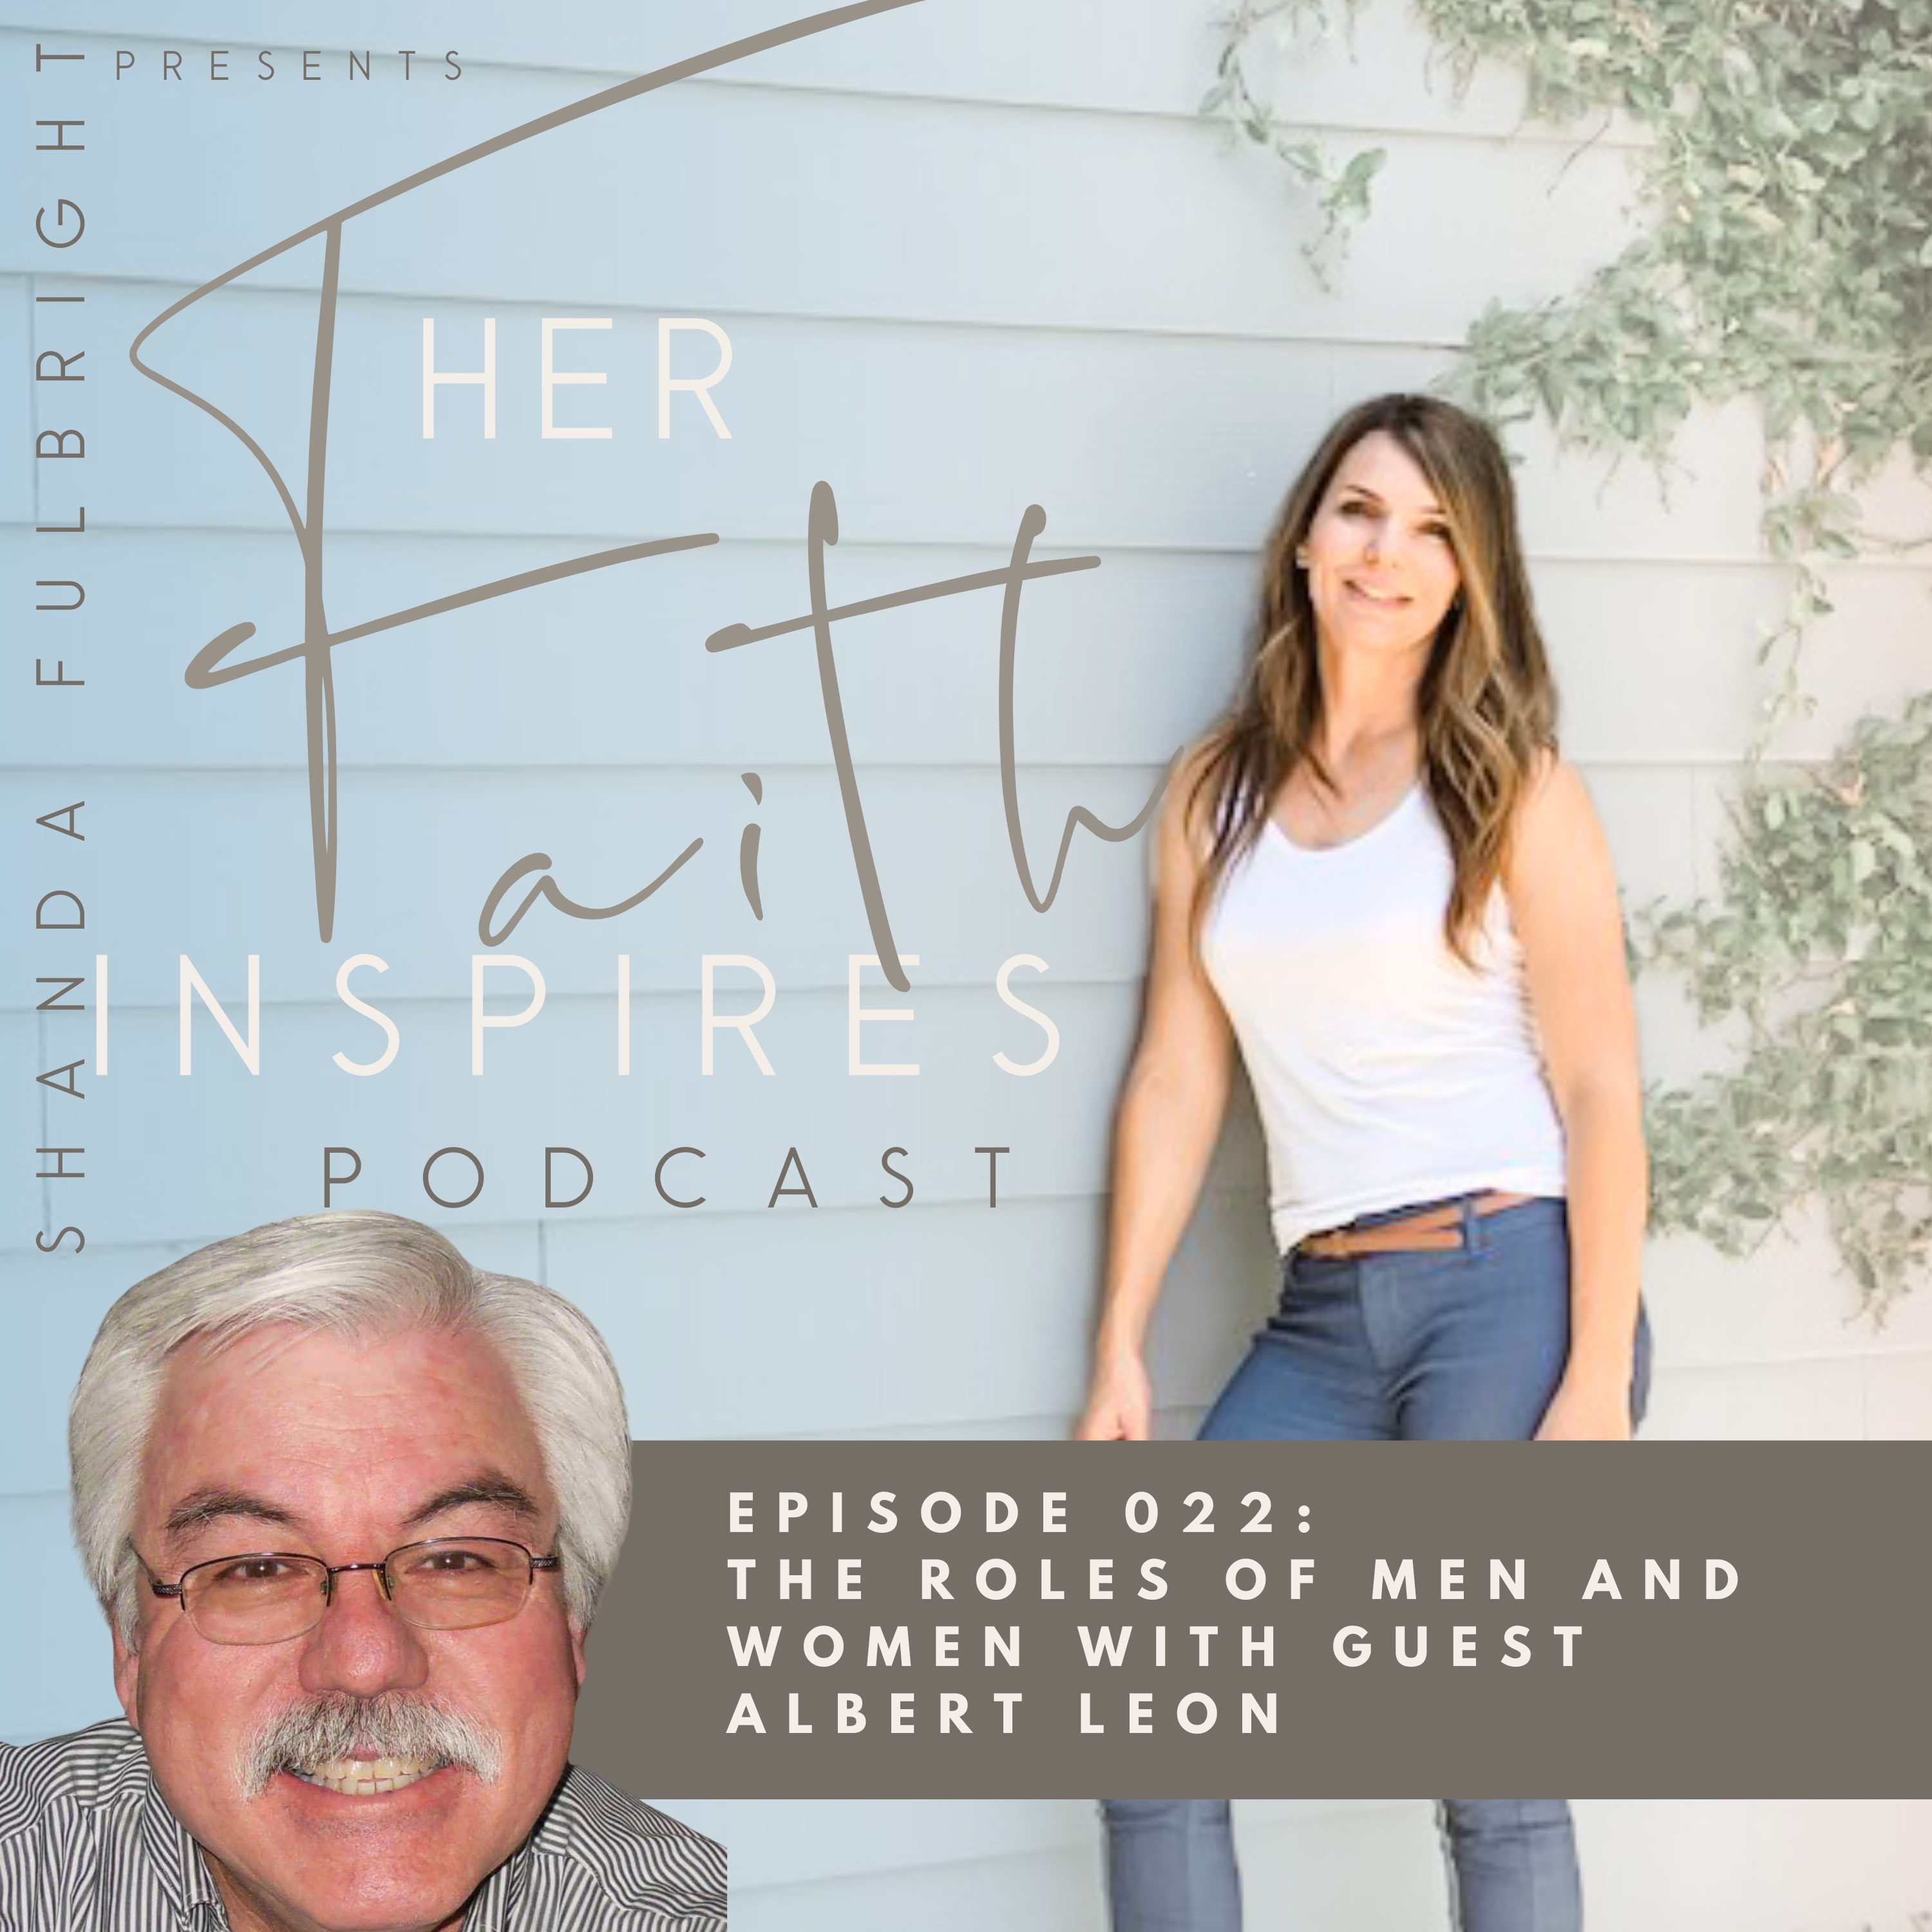 SF Podcast Episode 22 - HER FAITH INSPIRES 022 : The roles of men and women with guest Albert Leon